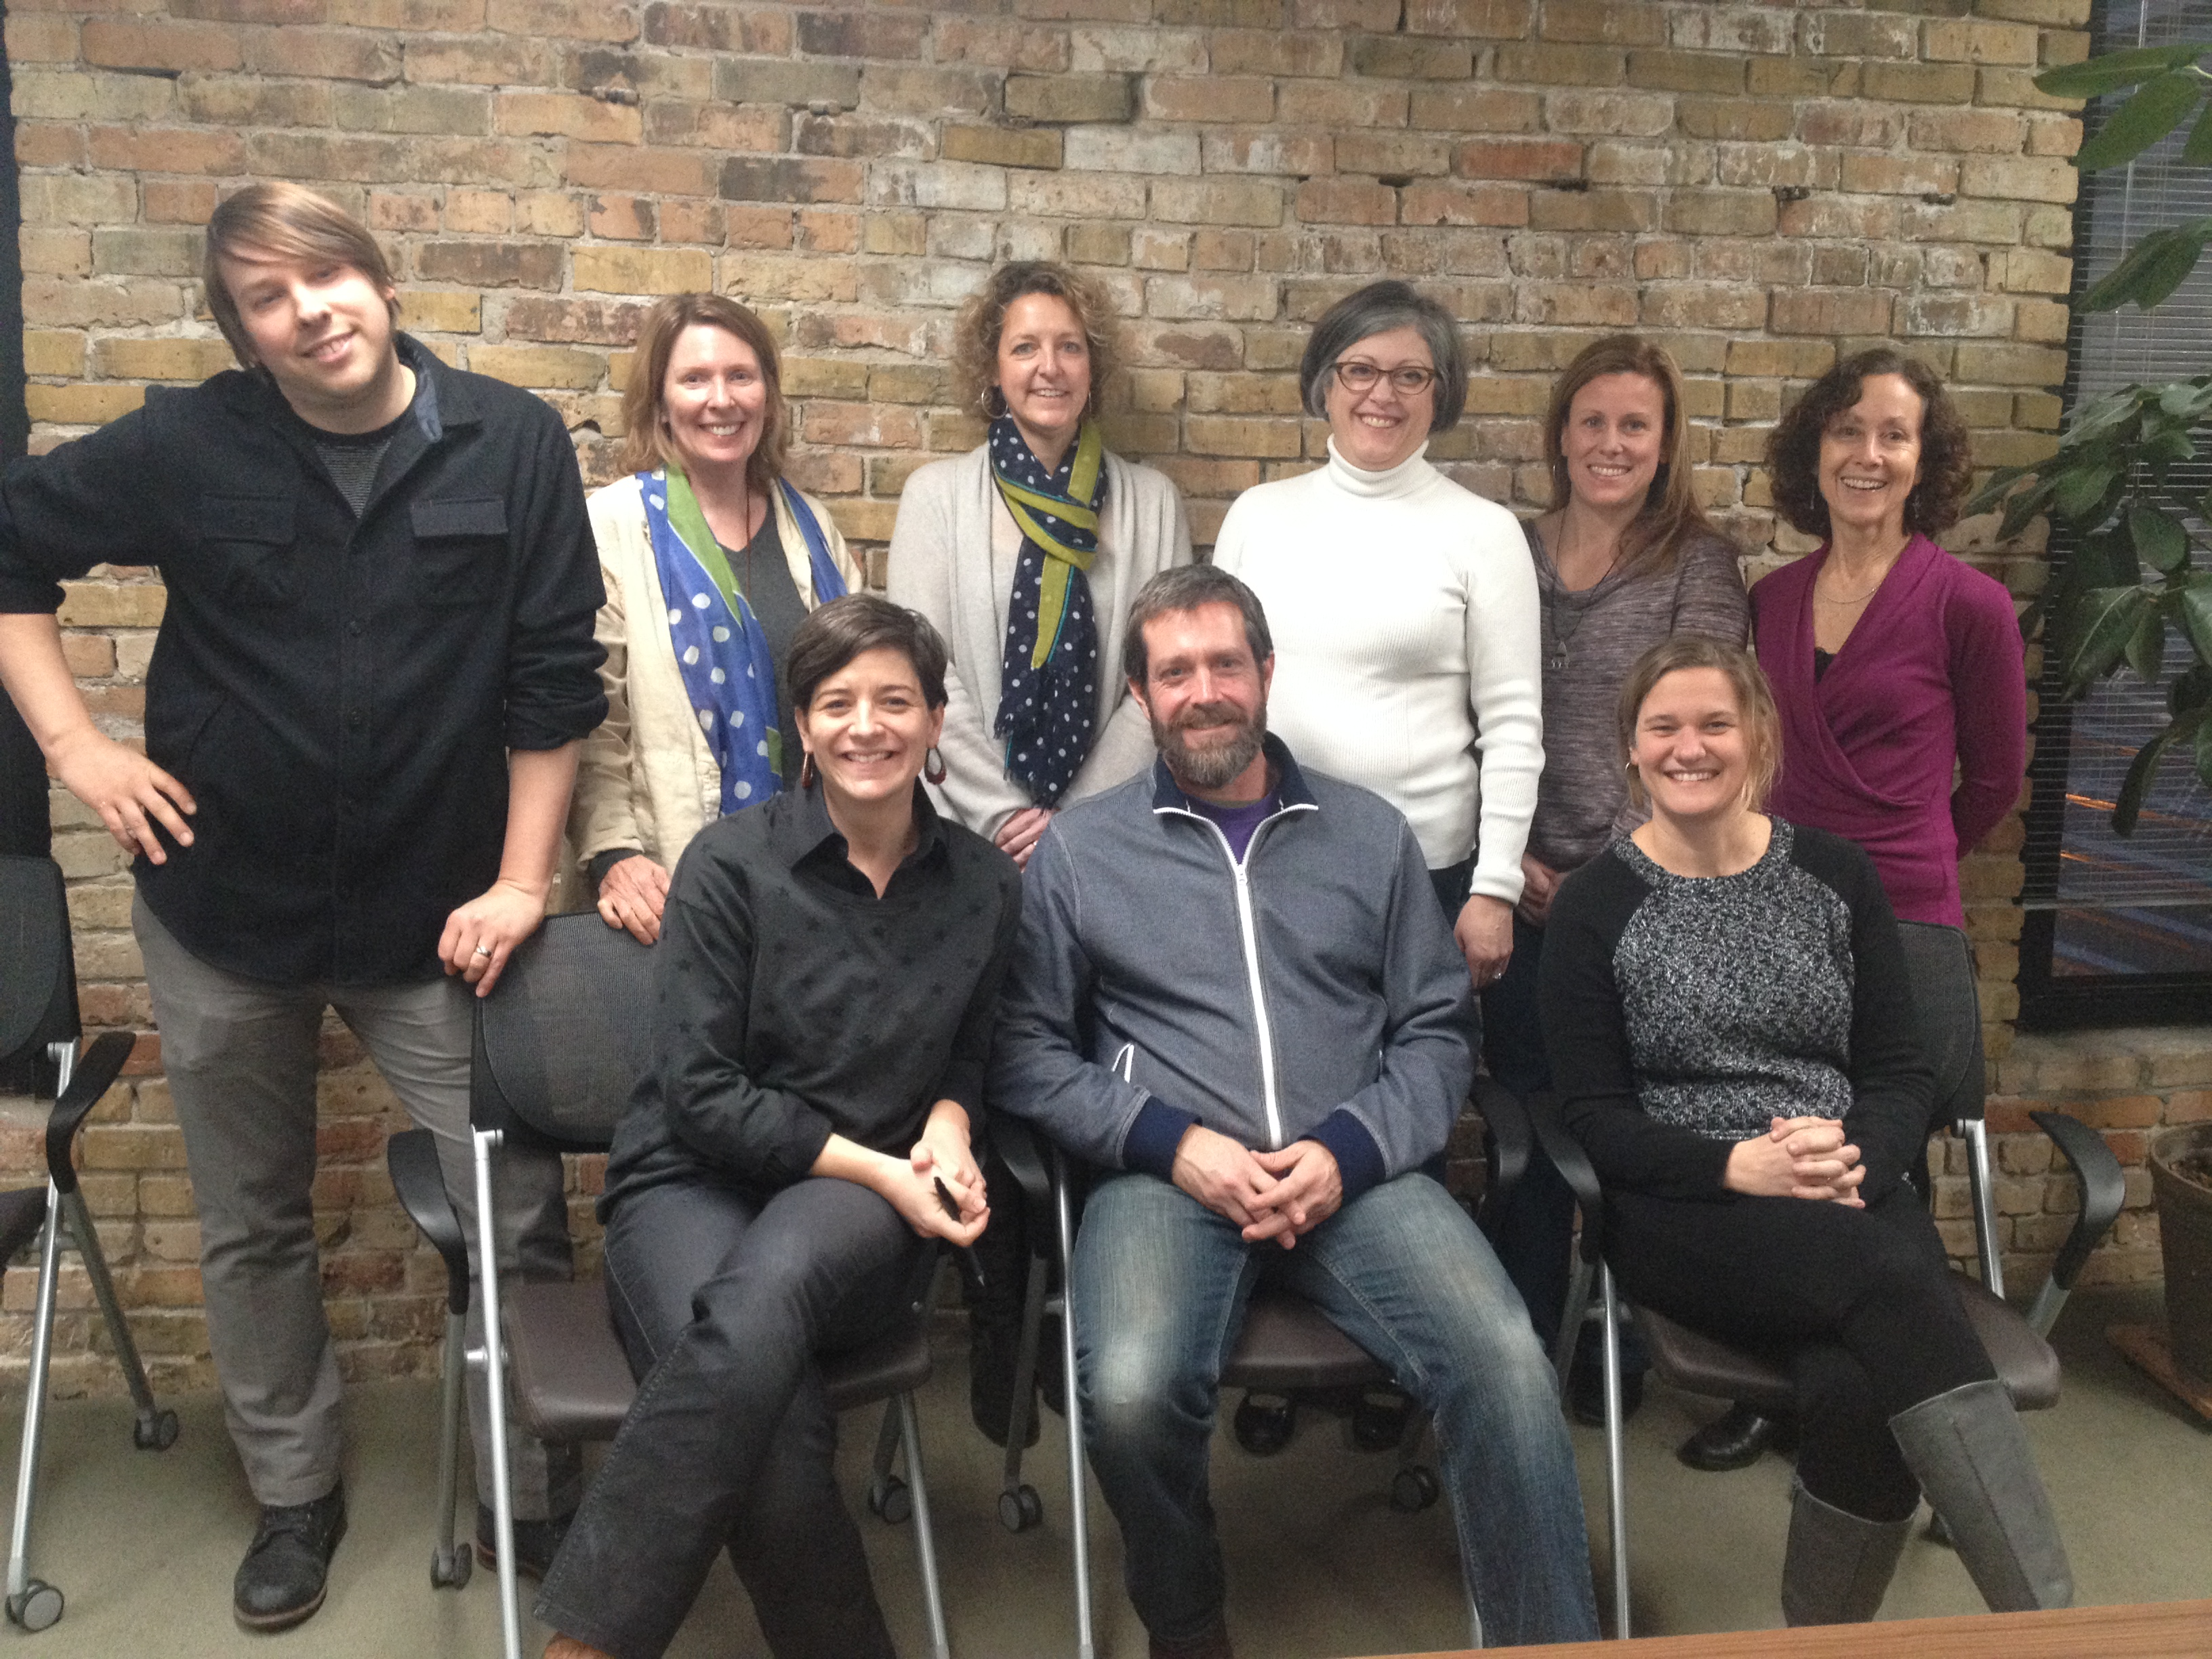 Upstream Arts Board of Directors and Full-Time Staff